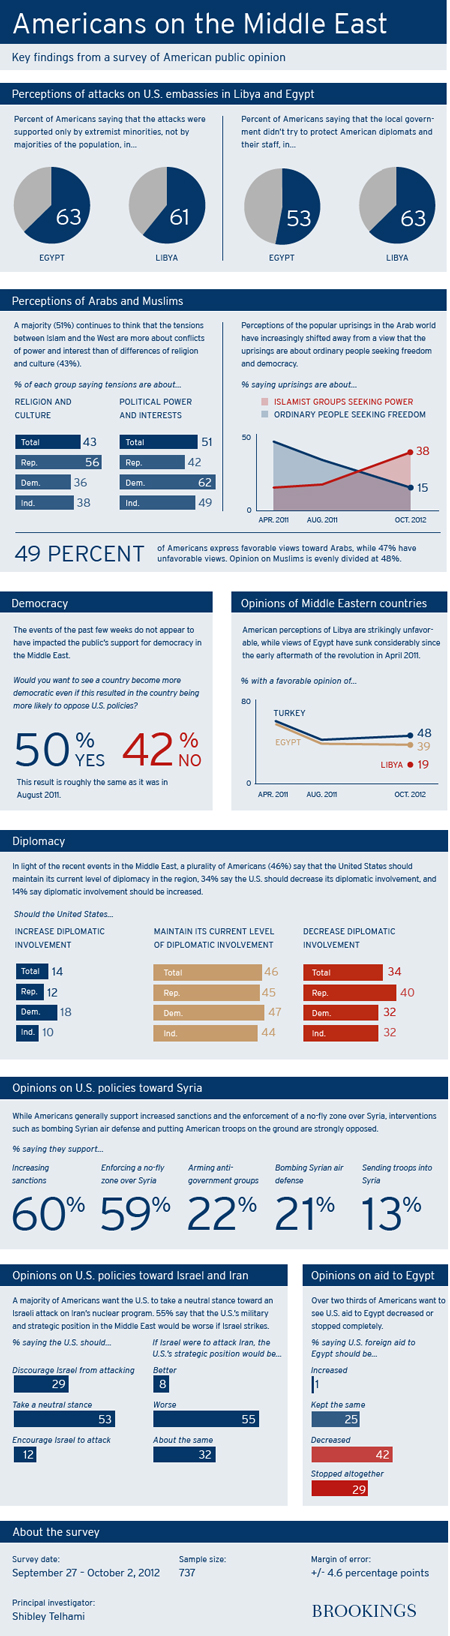 american public opinion and perceptions on